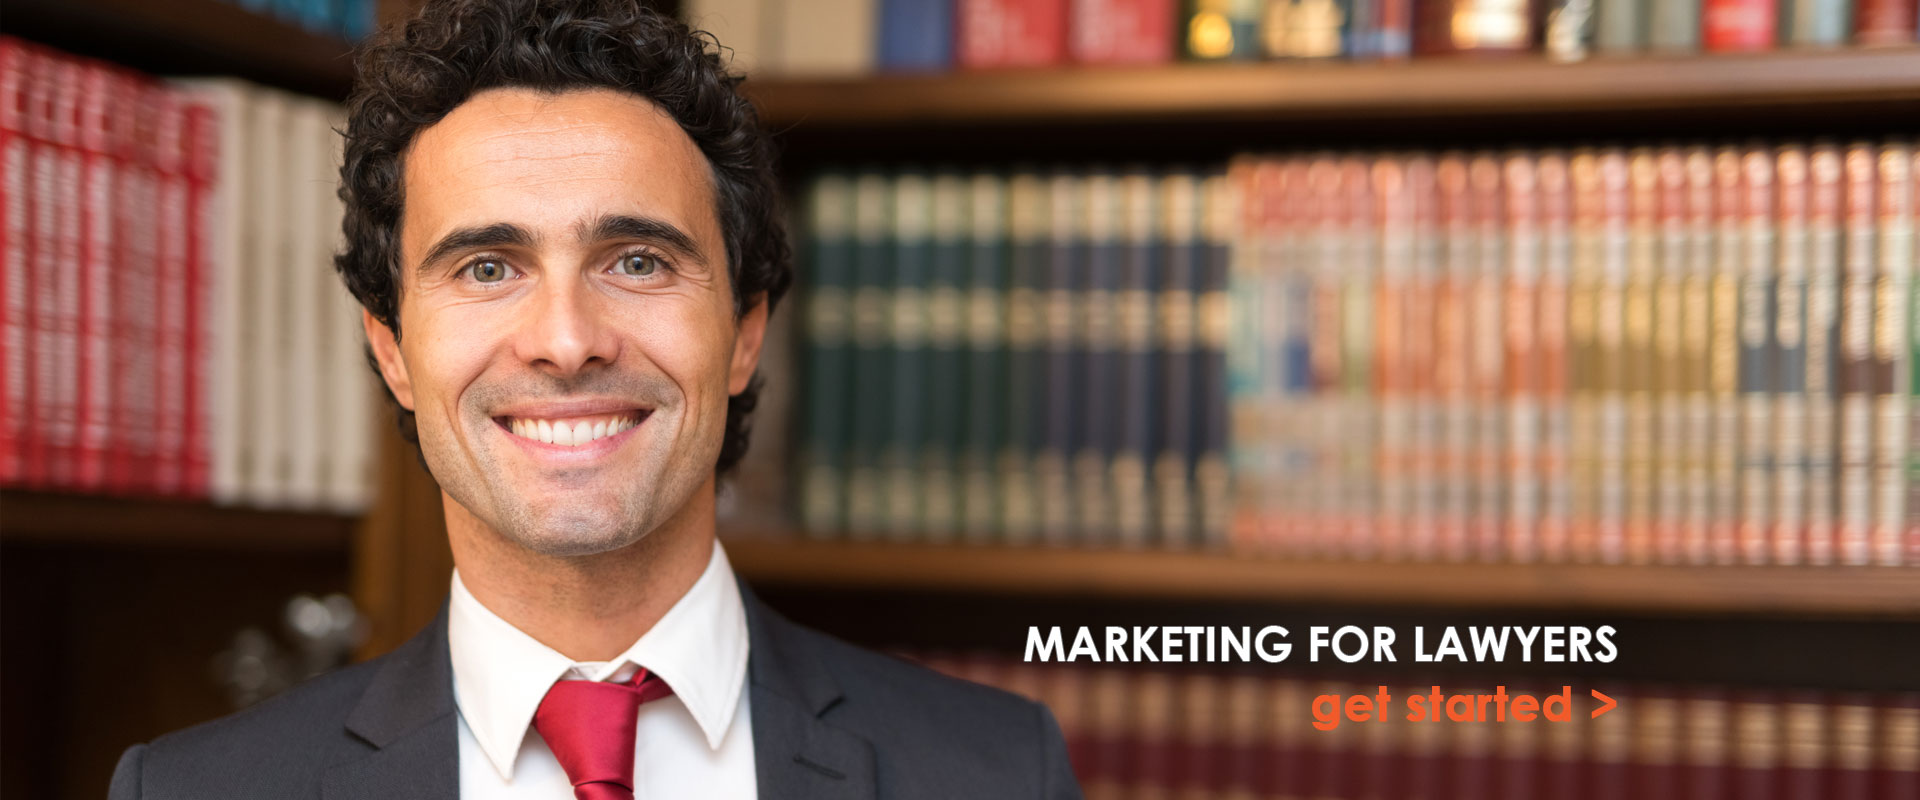 Lawyer Marketing | Attorney Marketing